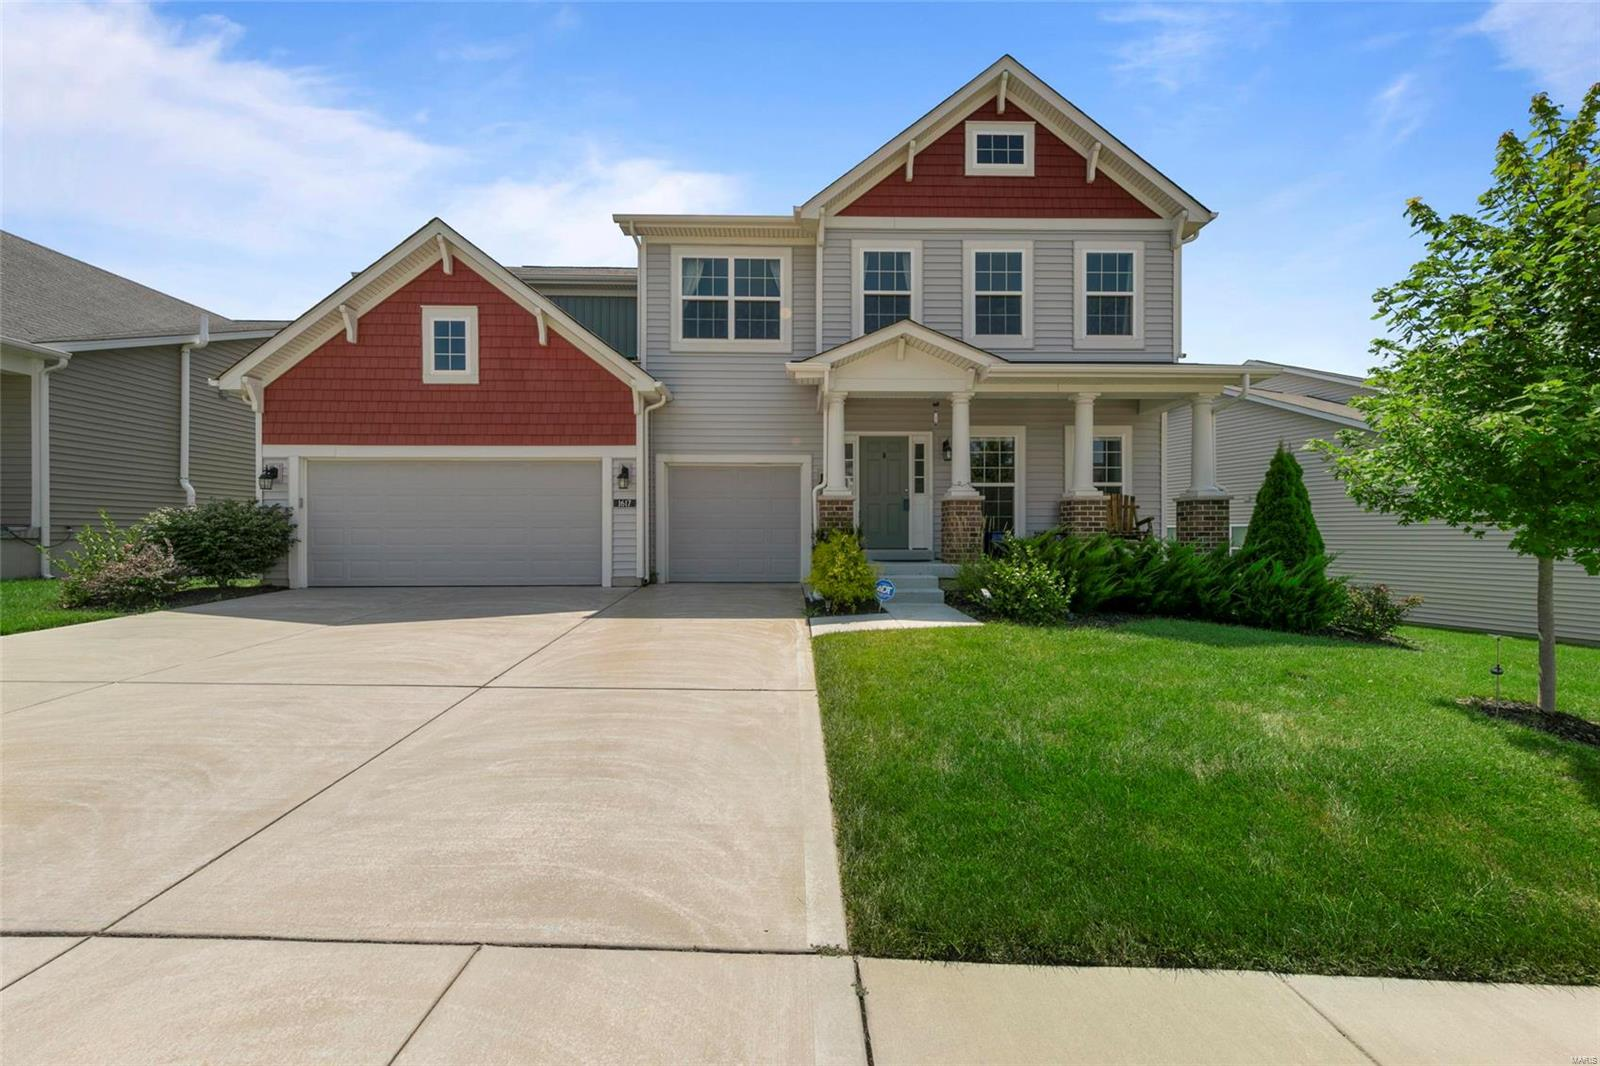 1617 Willowbrooke Manors Court, Creve Coeur, MO 63146